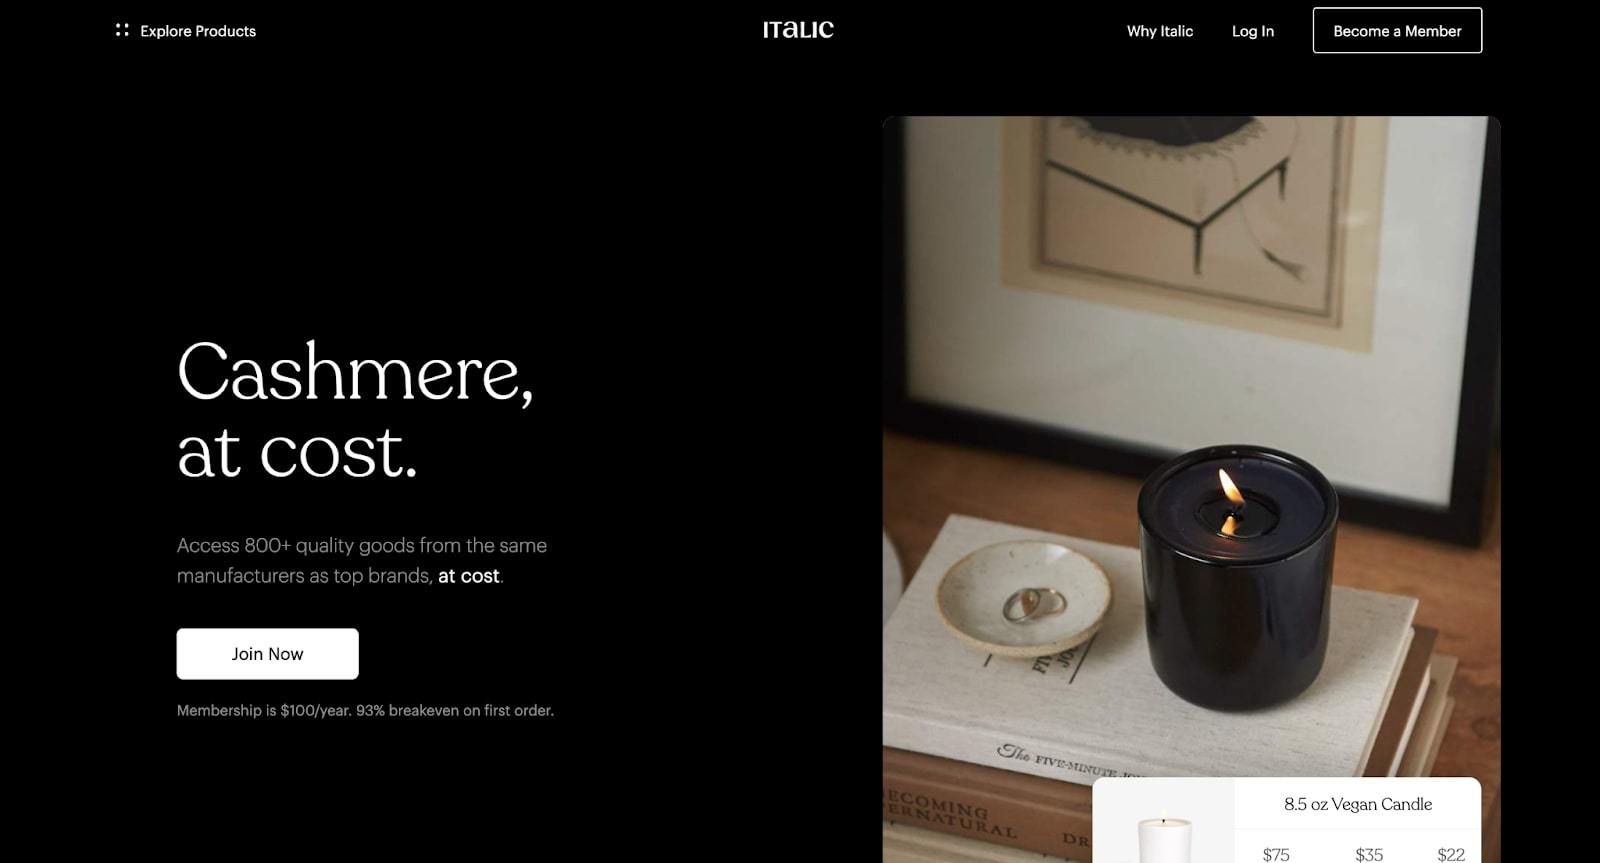 An image of Italic's home page.